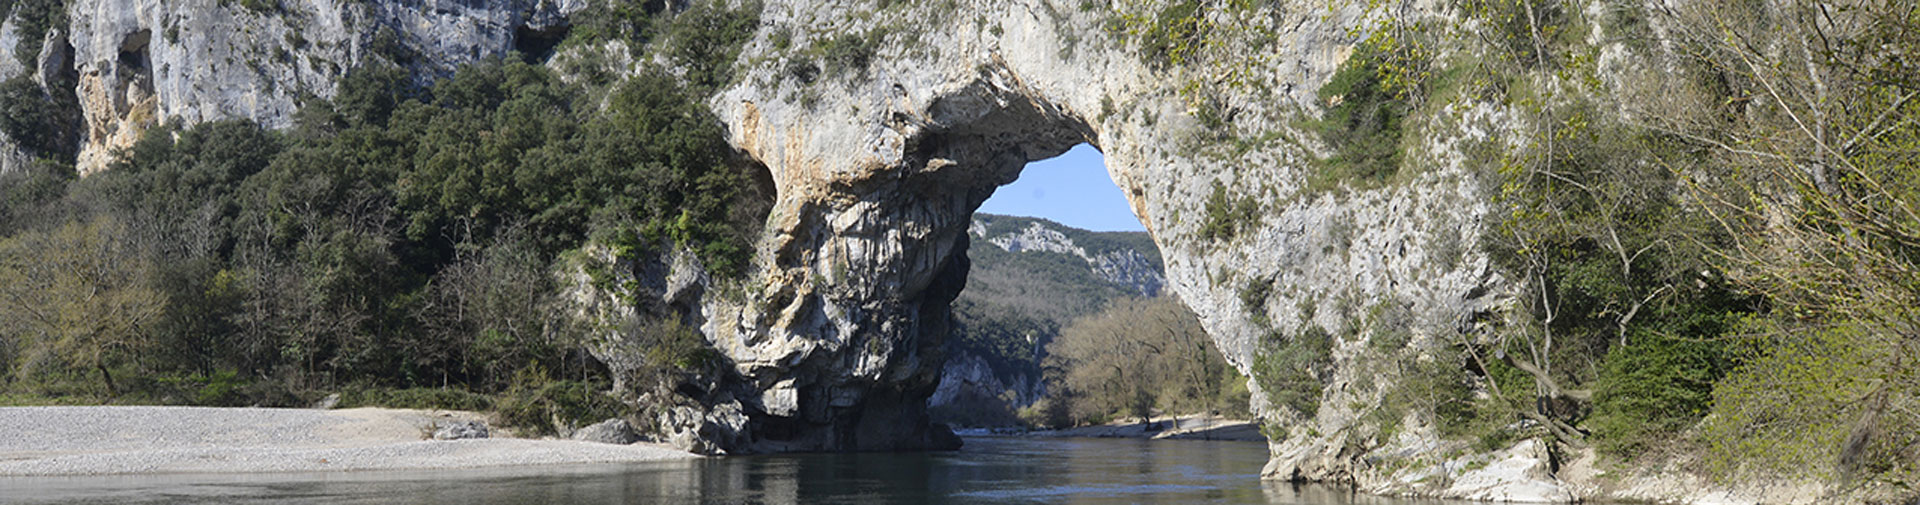 camping-gard-pont-ardeche-J-M-ANDRE